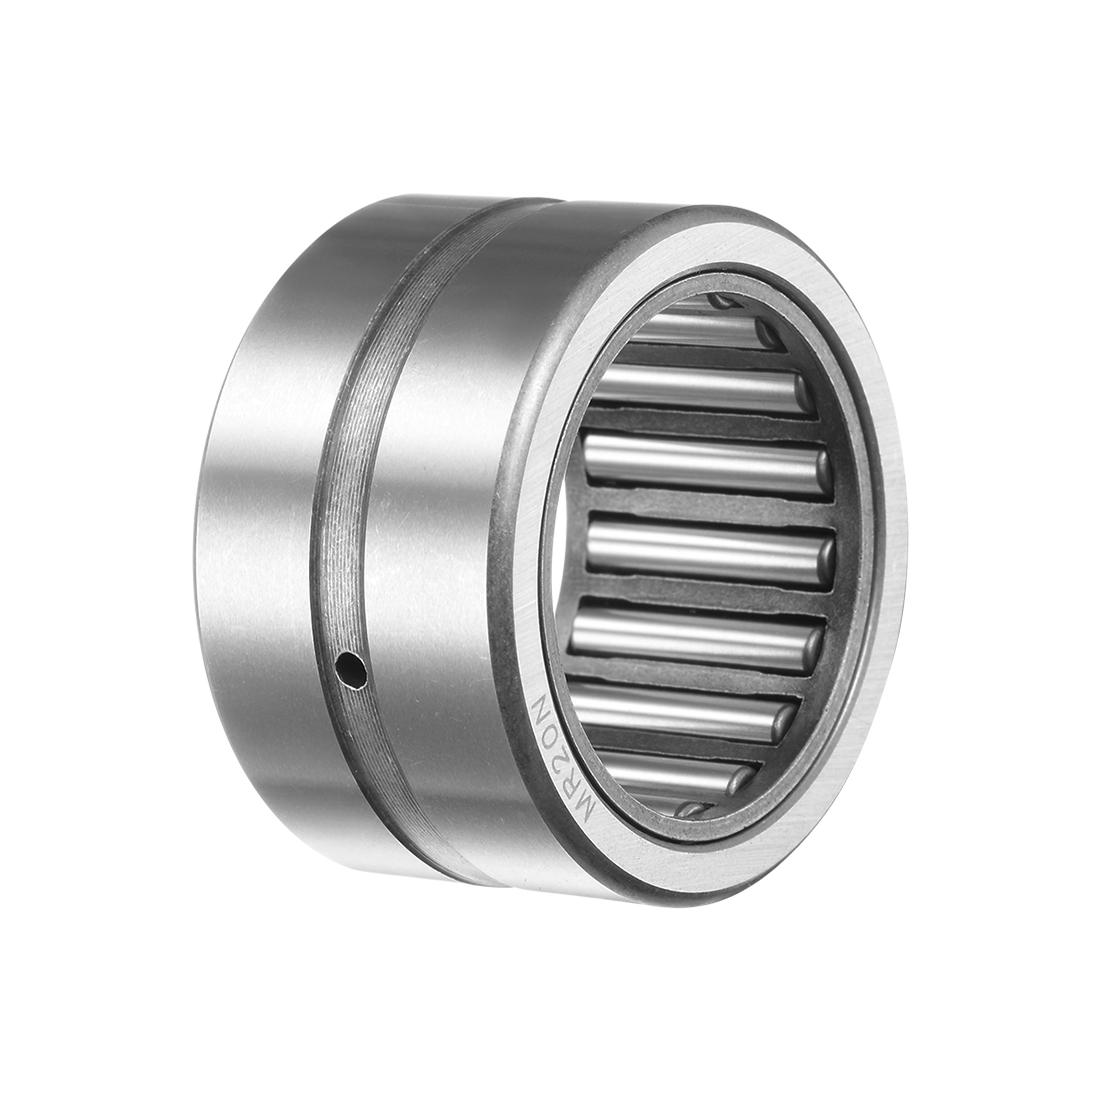 MR20N Machined Ring Needle Roller Bearing 1-1/4 Bore, 1-3/4 OD, 1 Width